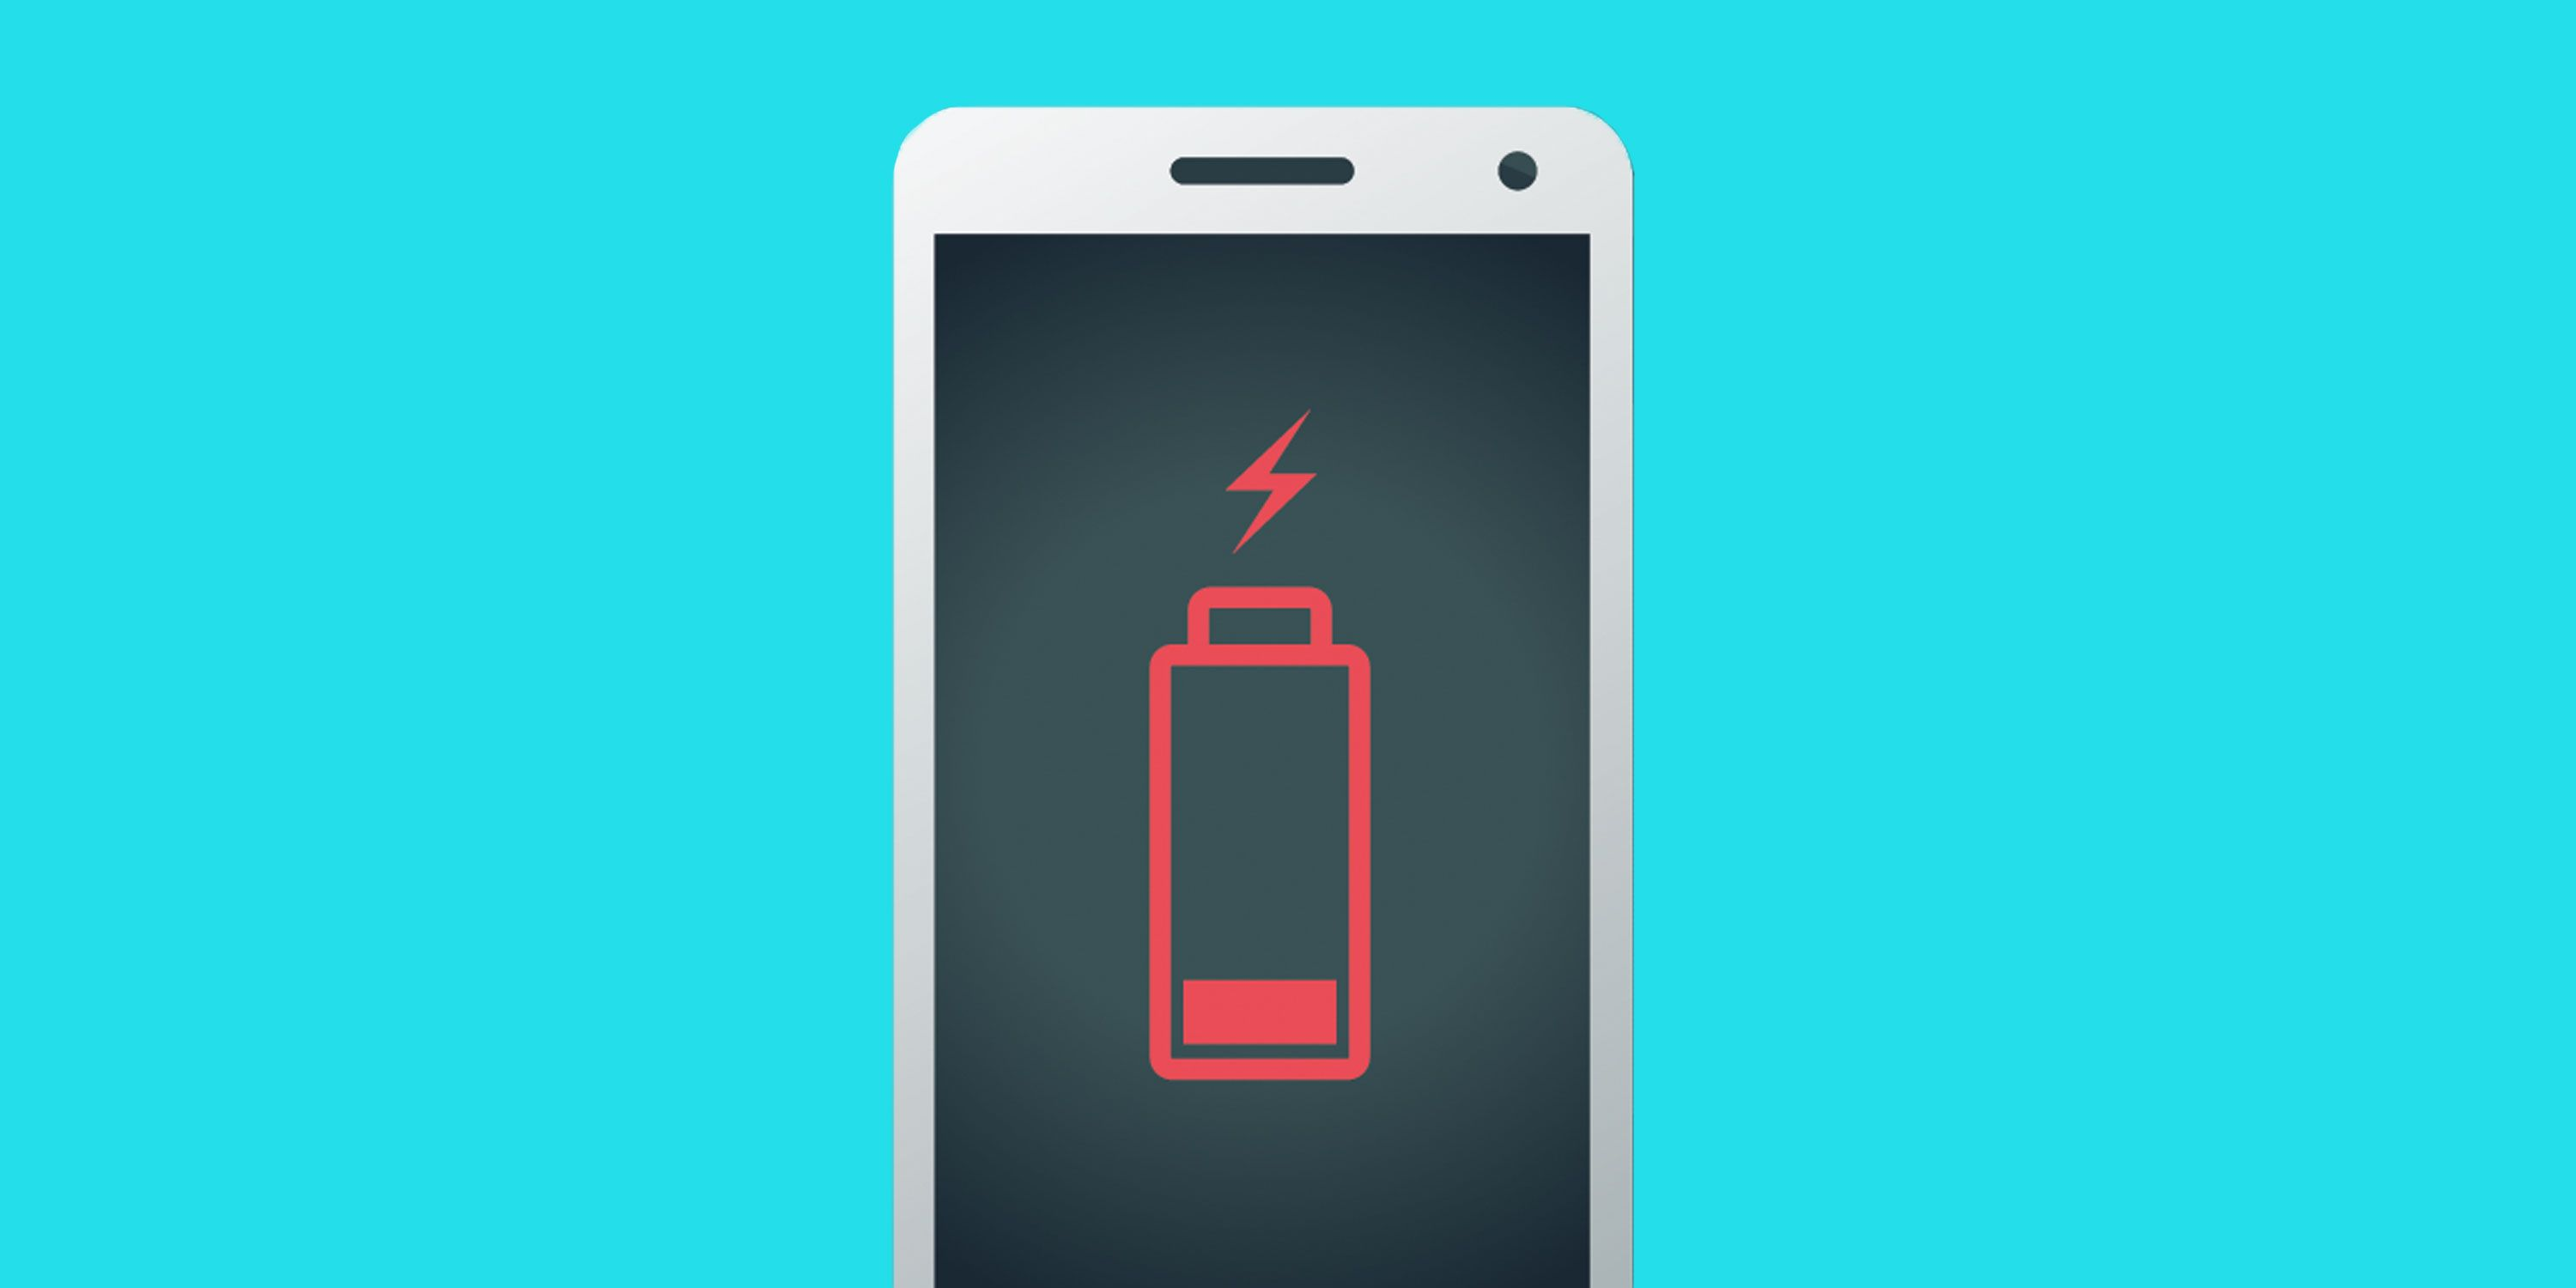 Low battery, dead battery, mobile phone, generic